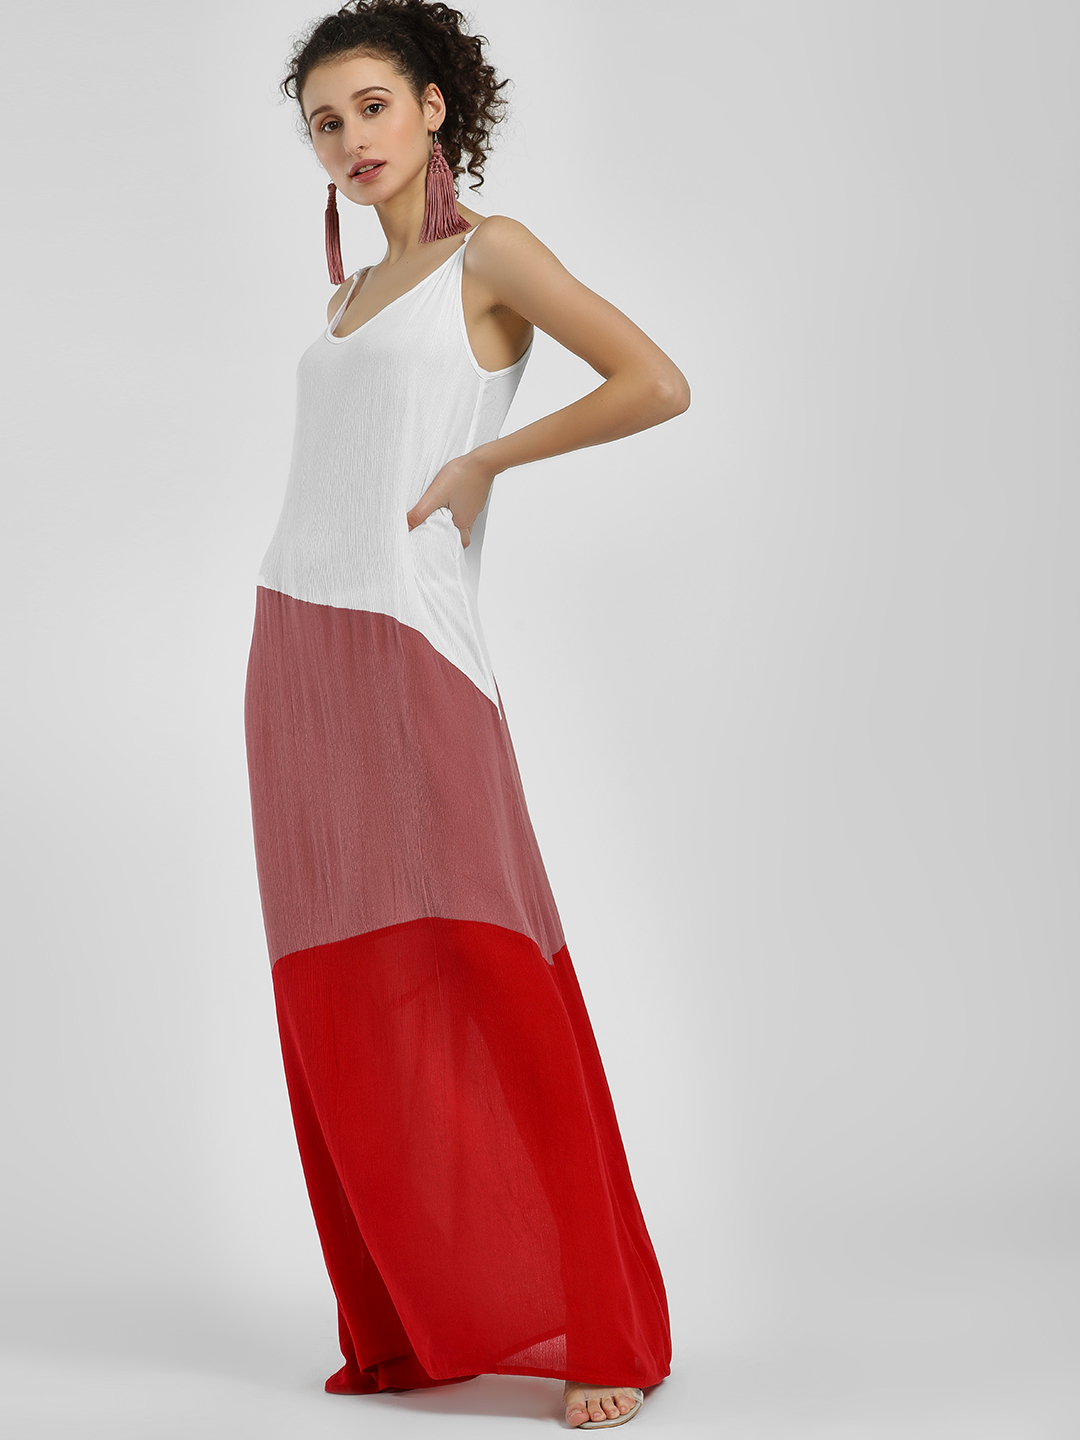 The Gud Look Red/White/Pink Colour Block Strappy Maxi Dress 1